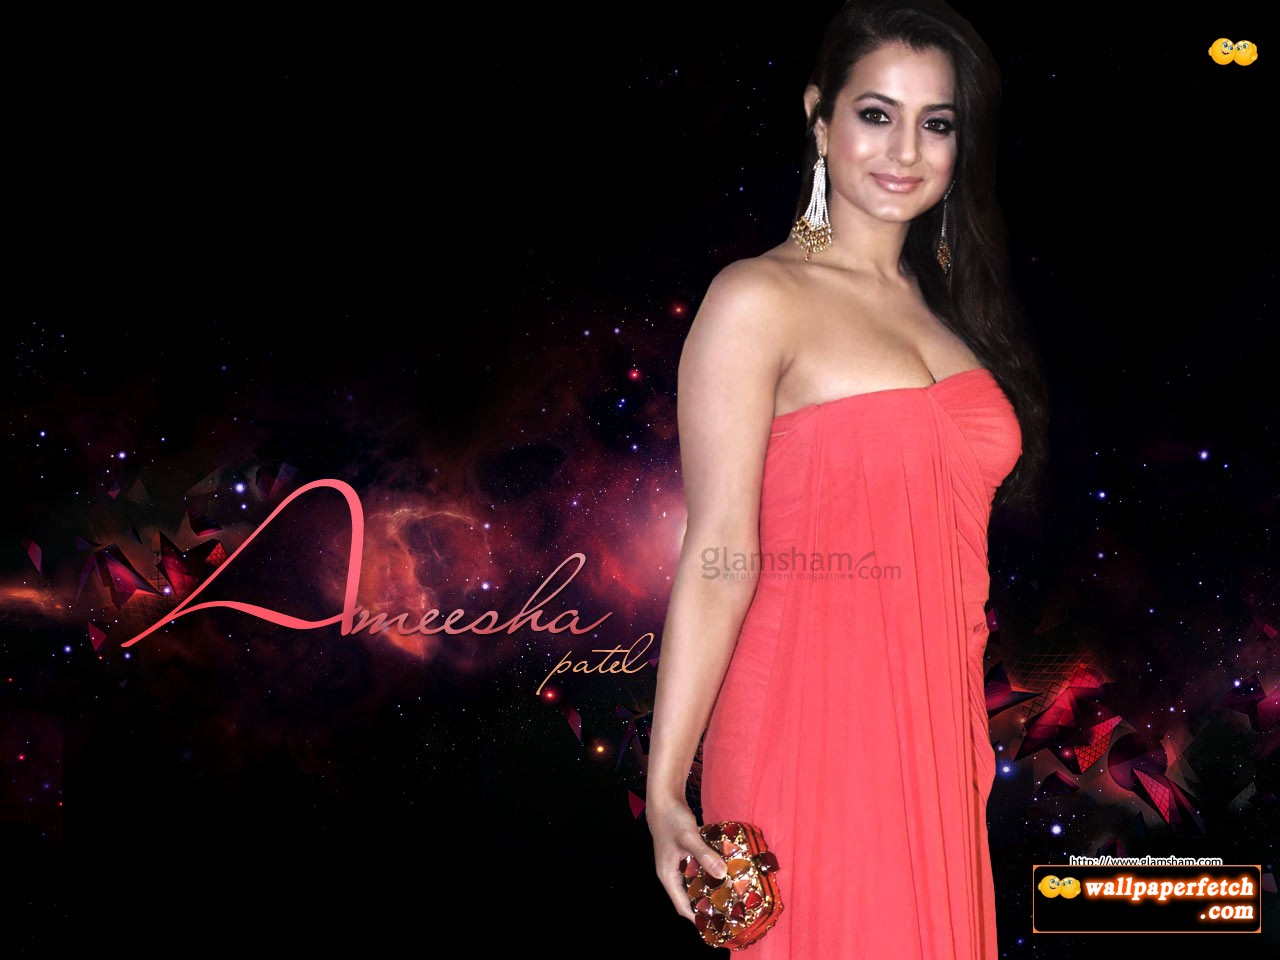 ameesha patel wallpapers - photo #4